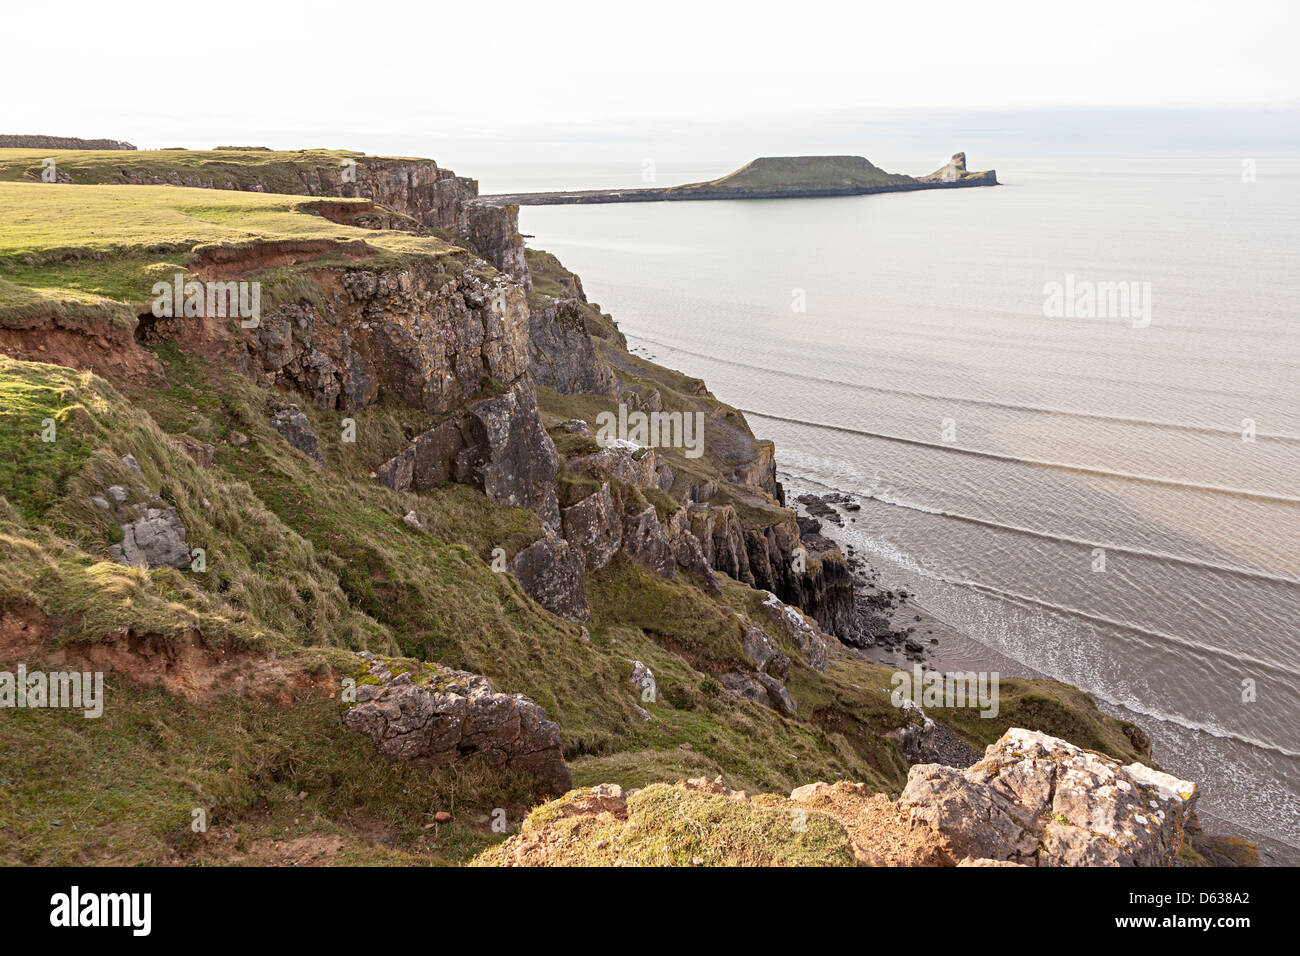 Sea cliffs and Worm's Head, Gower, Wales, UK - Stock Image